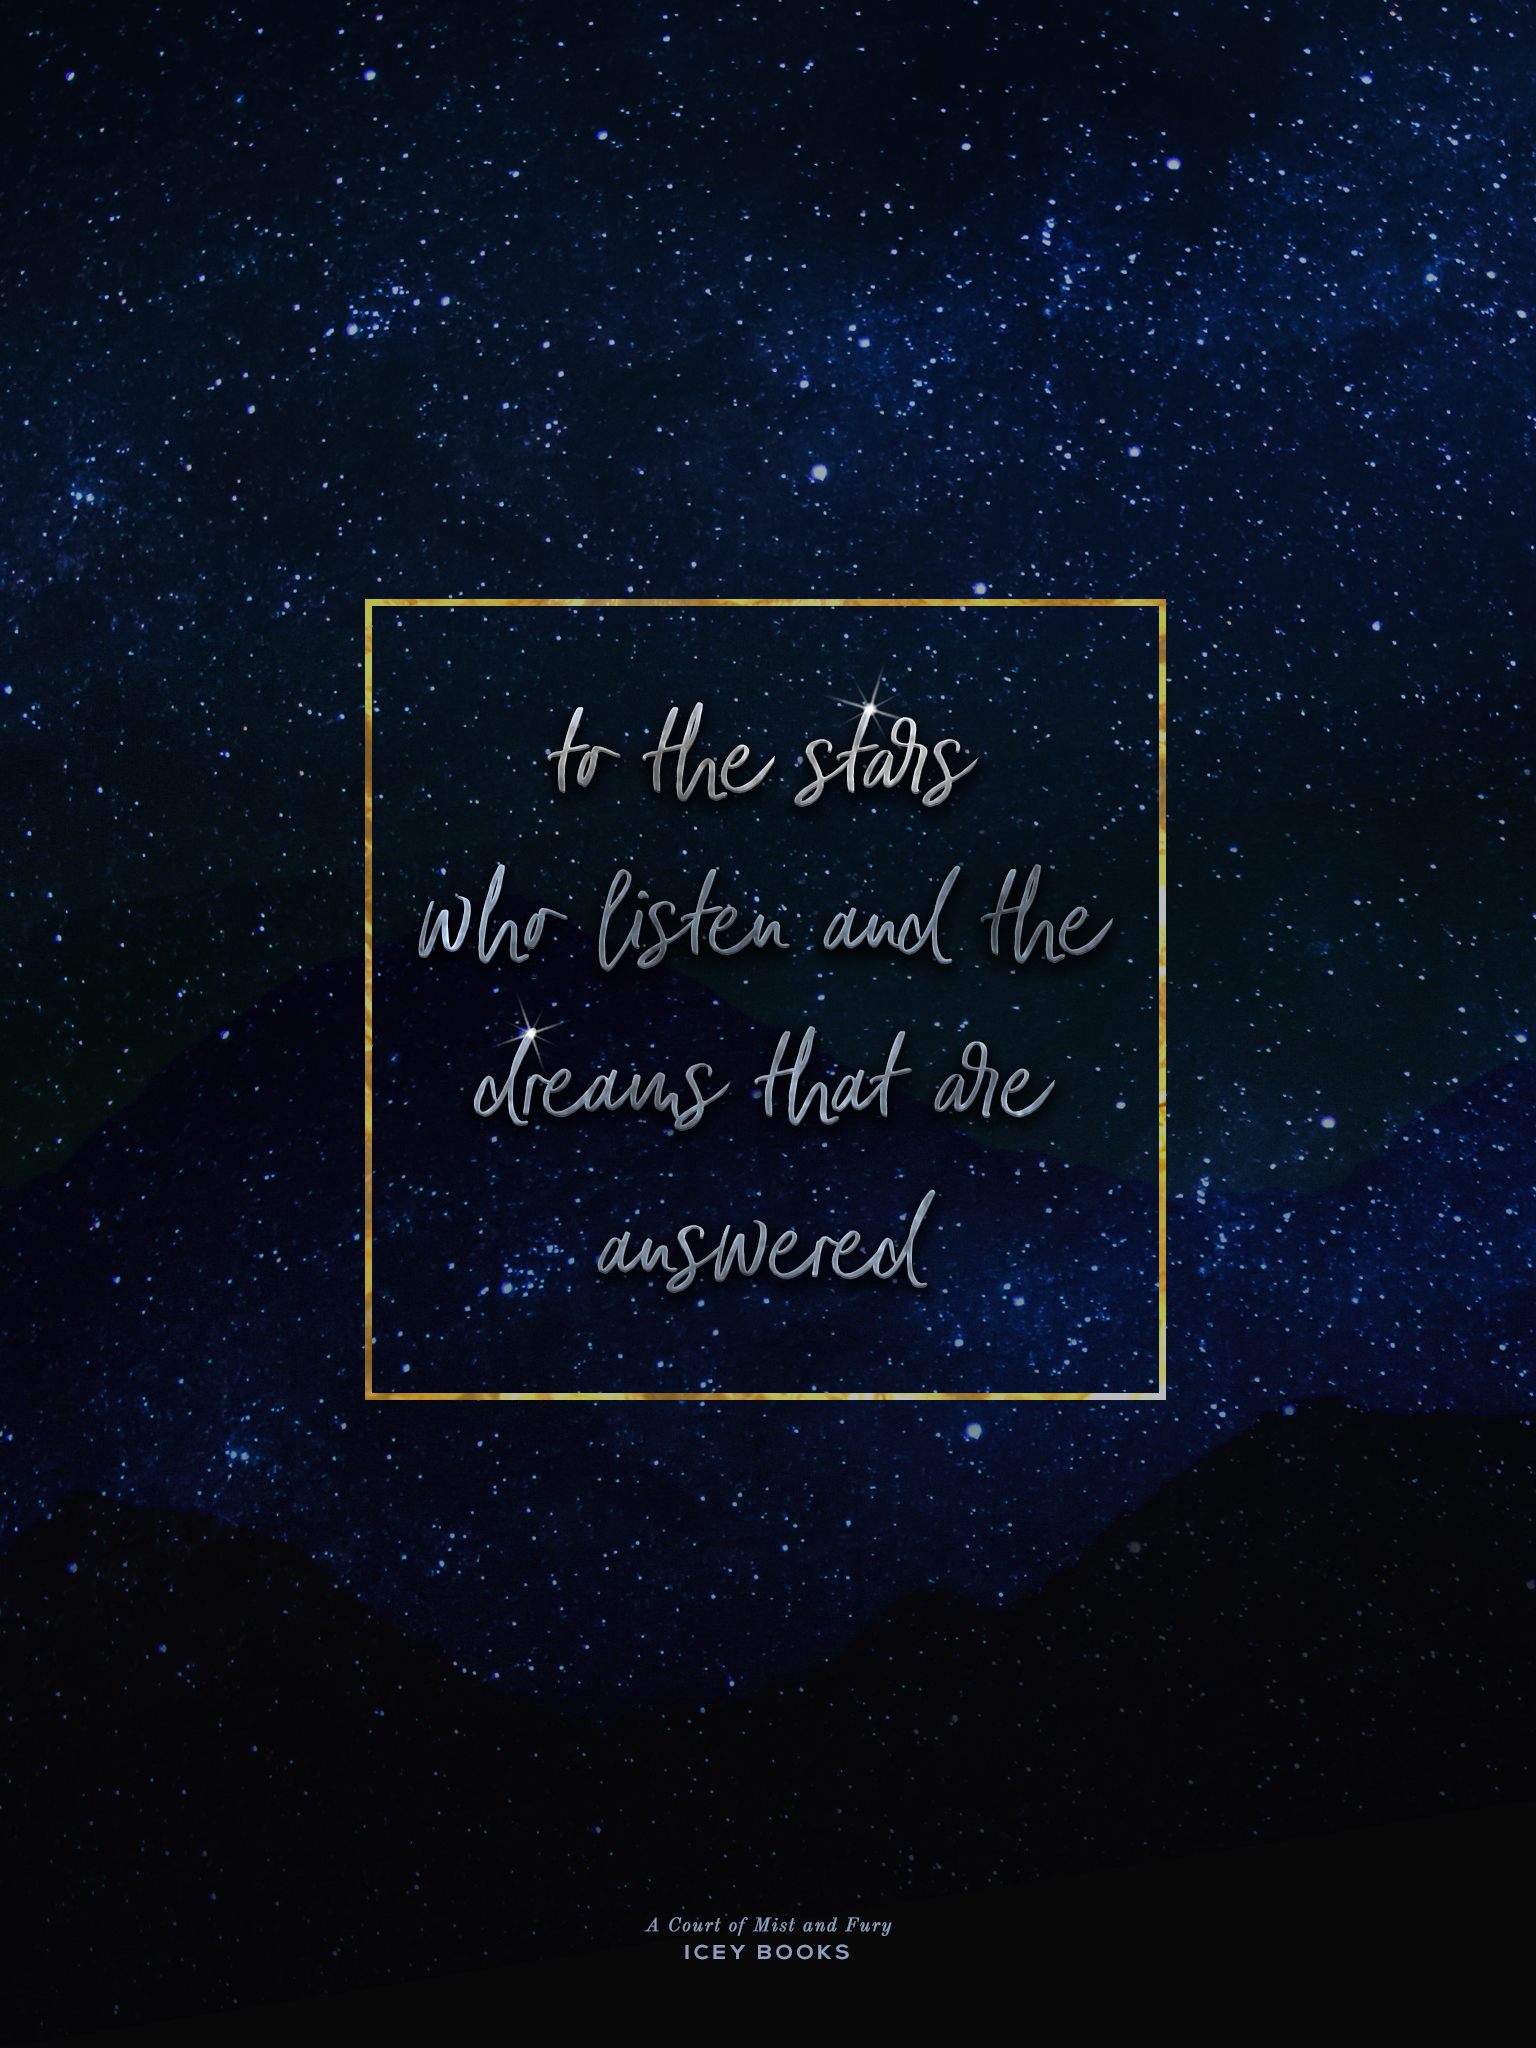 Quote Candy 55 Download A Wallpaper For A Court Of Mist And Fury